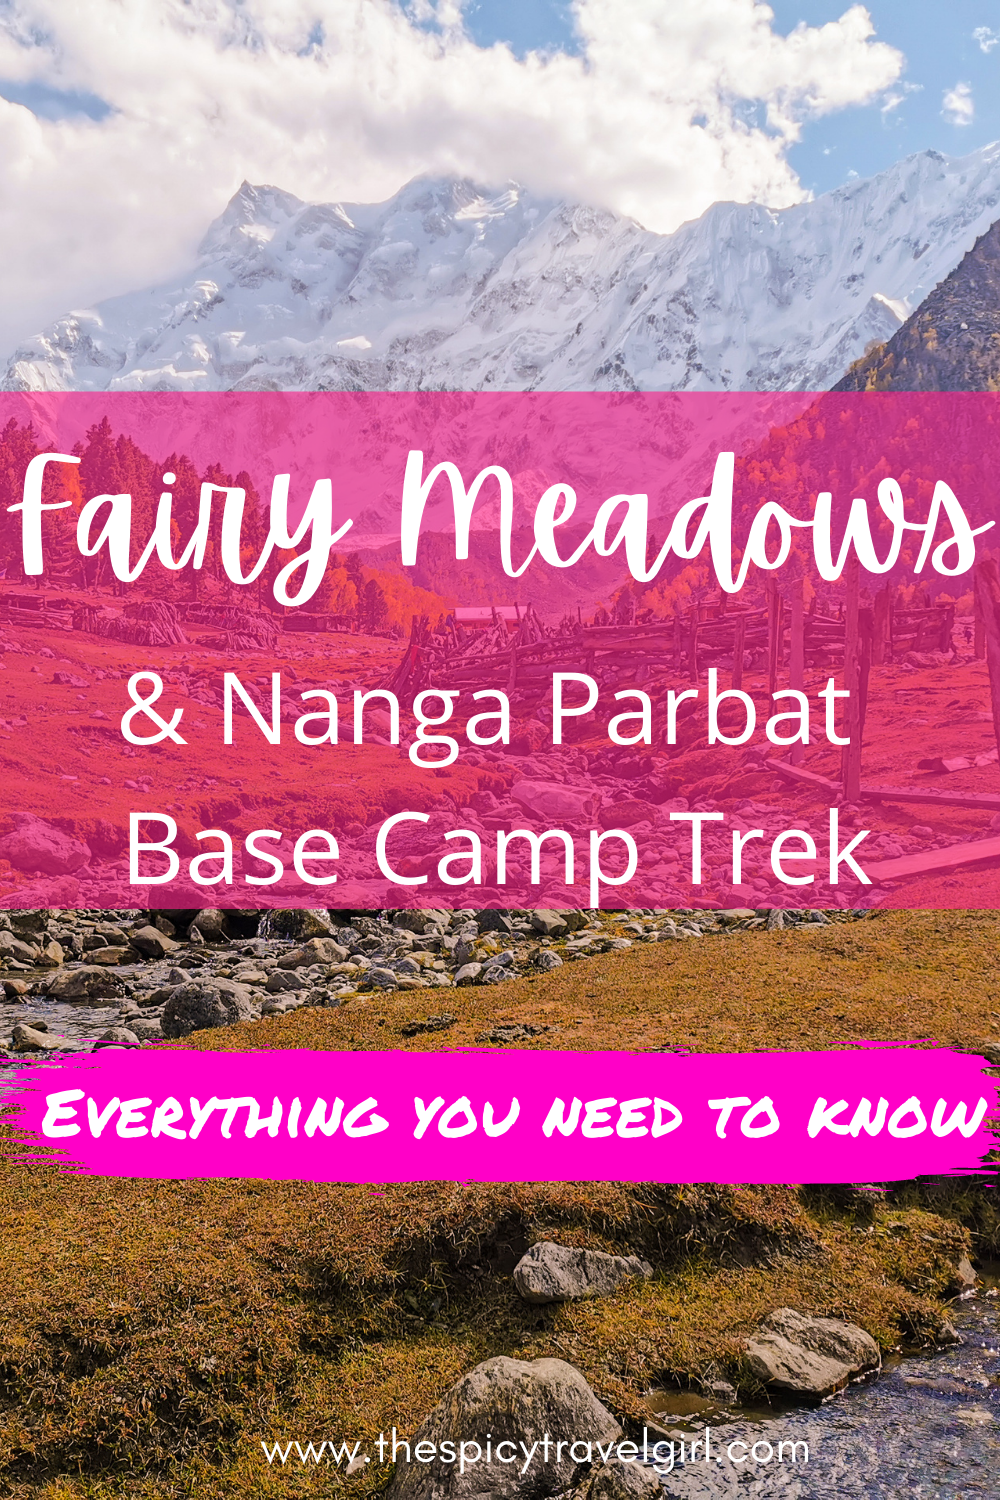 Fairy Meadows is one of the most breathtaking places to visit in Pakistan and the gateway to the mighty Nanga Parbat mountain. Plan your perfect trip to Fairy Meadows Pakistan and the Nanga Parbat with this complete Fairy Meadows travel guide that will answer all your questions about traveling to Fairy Meadows Pakistan. #pakistantravel #pakistannature #pakistanmountains